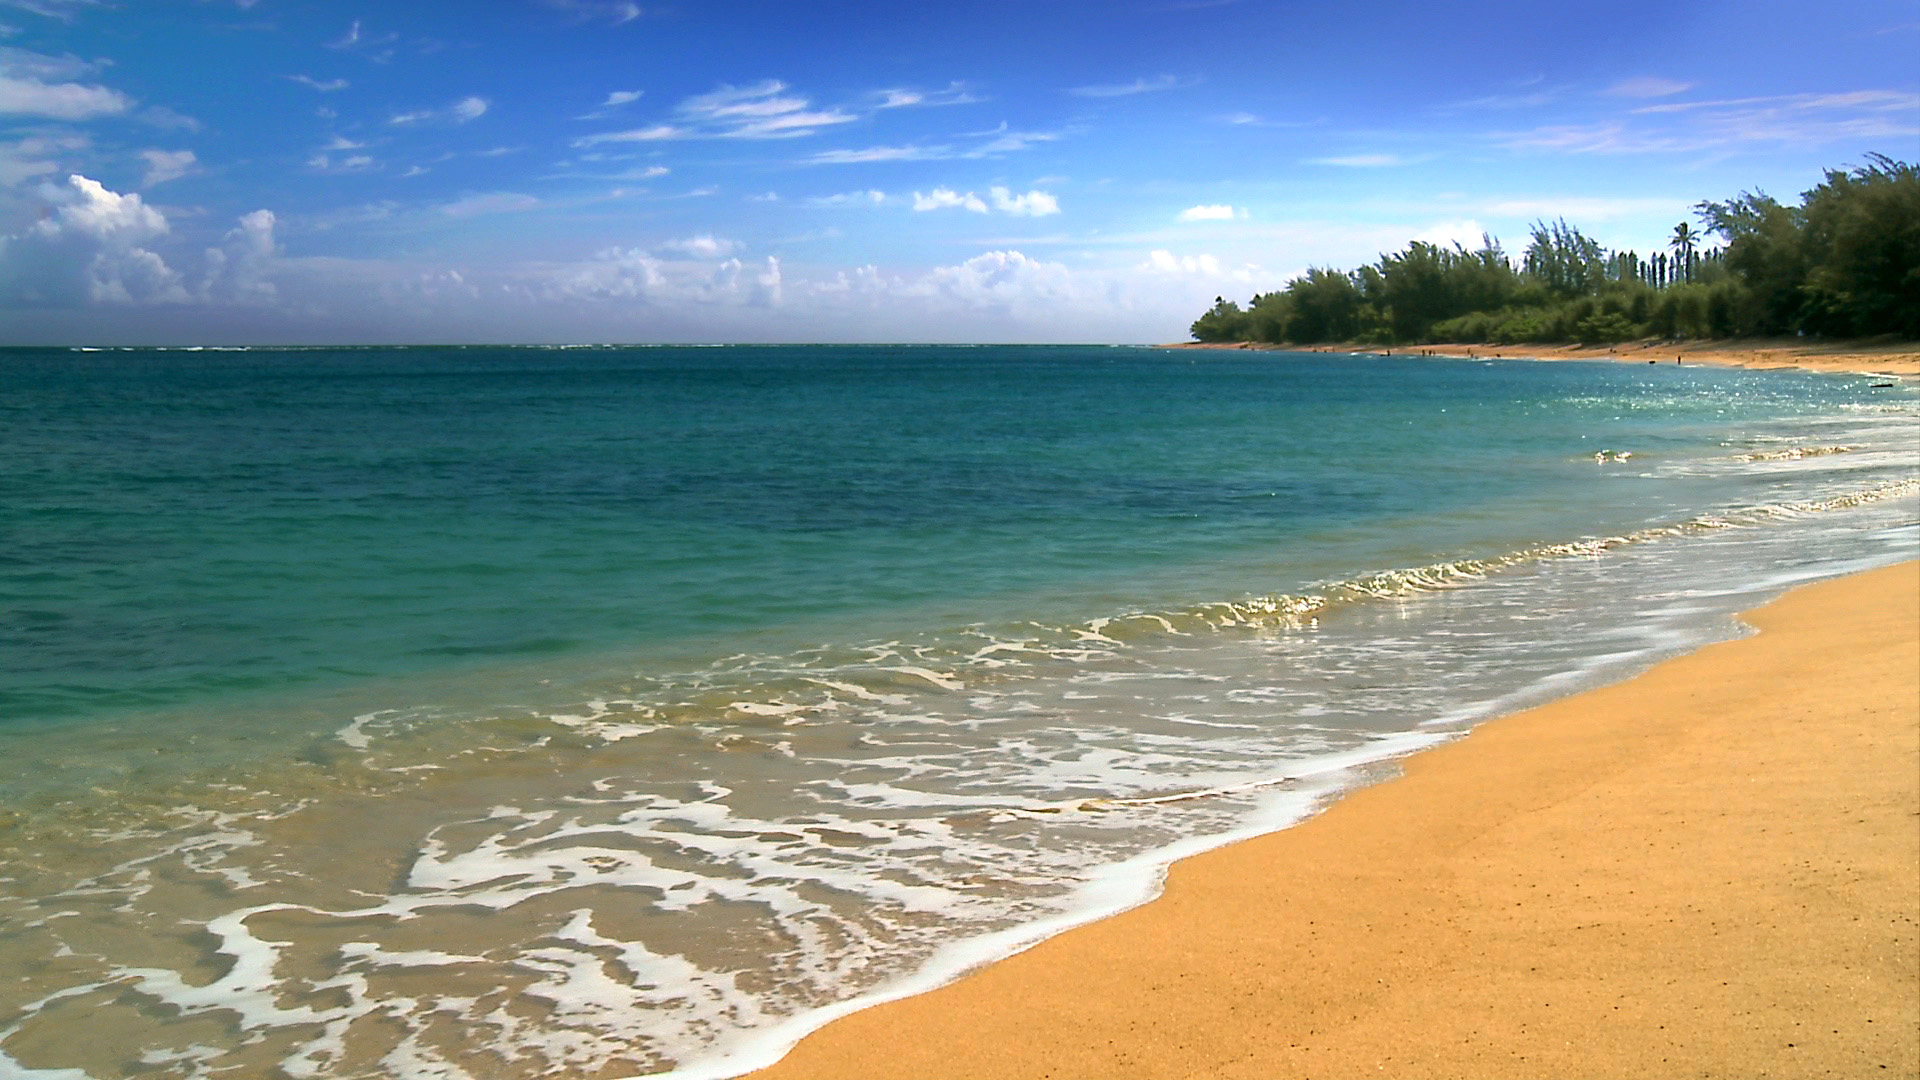 hawaii photos nature background beach beaches media webshots 1920x1080